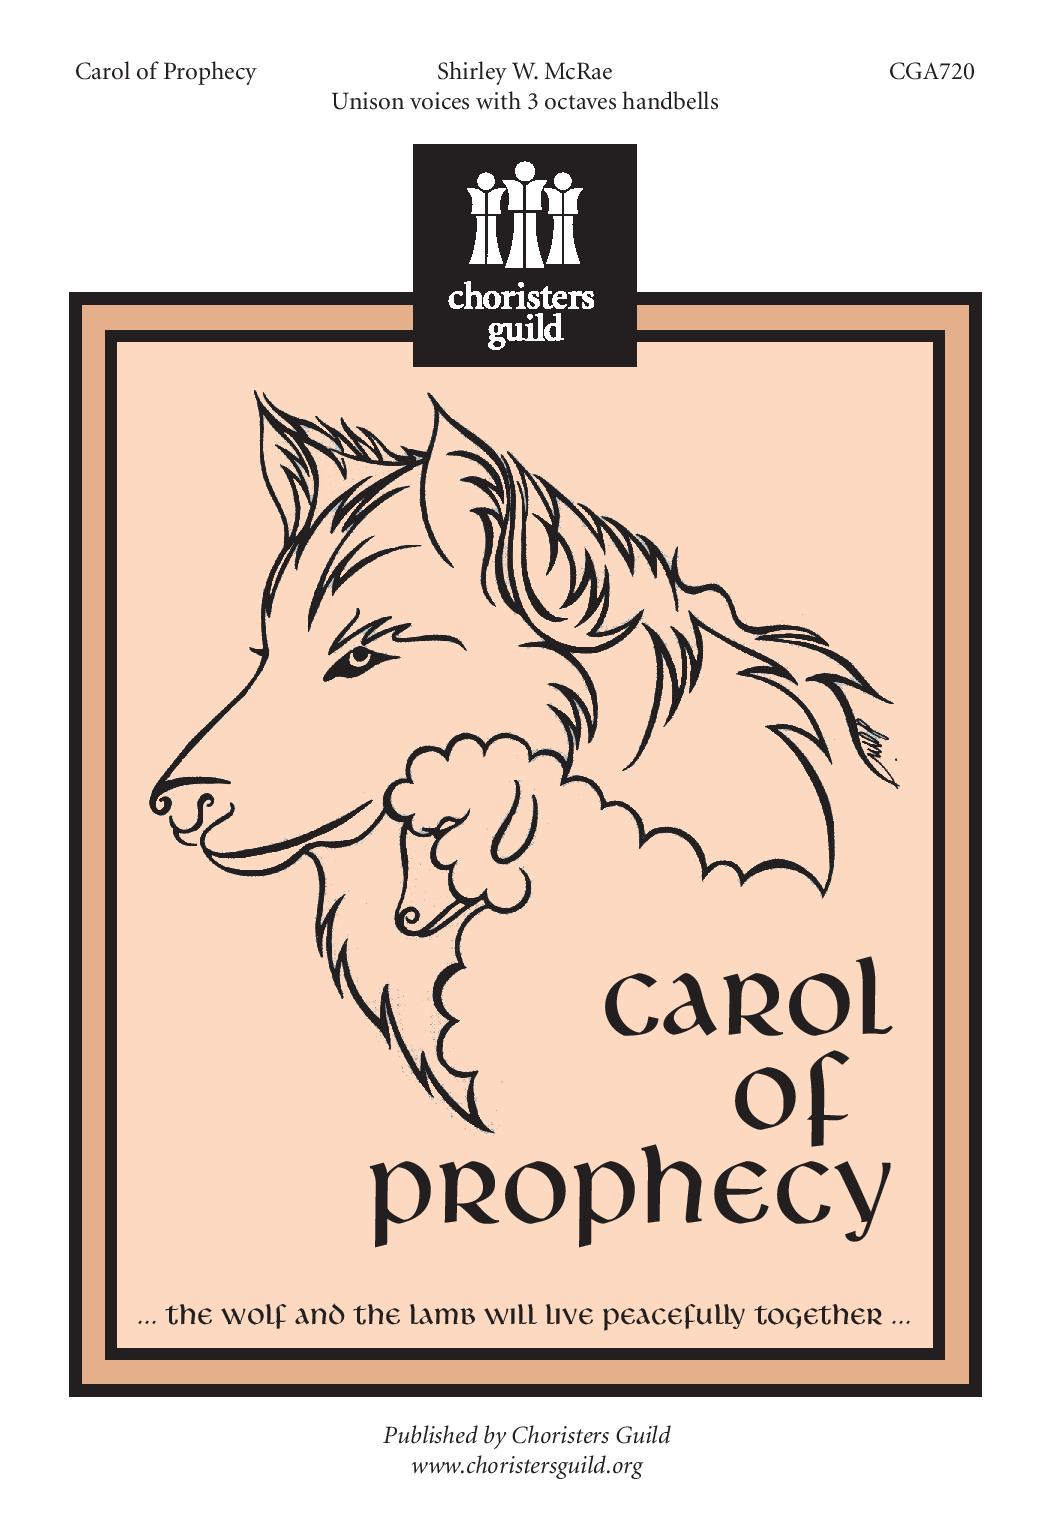 Carol of Prophecy